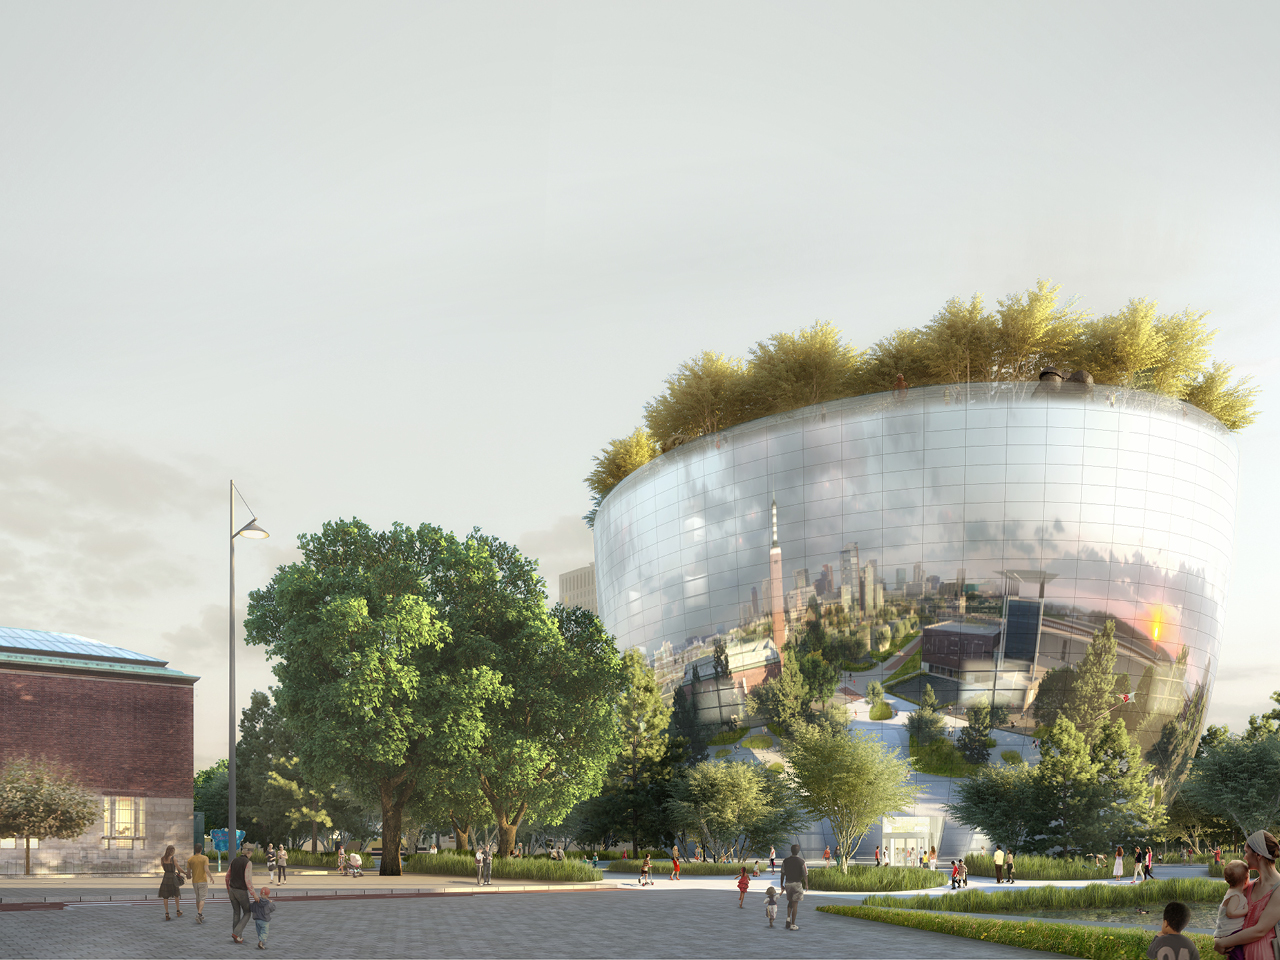 Mvrdv we are looking for new interns in architecture and